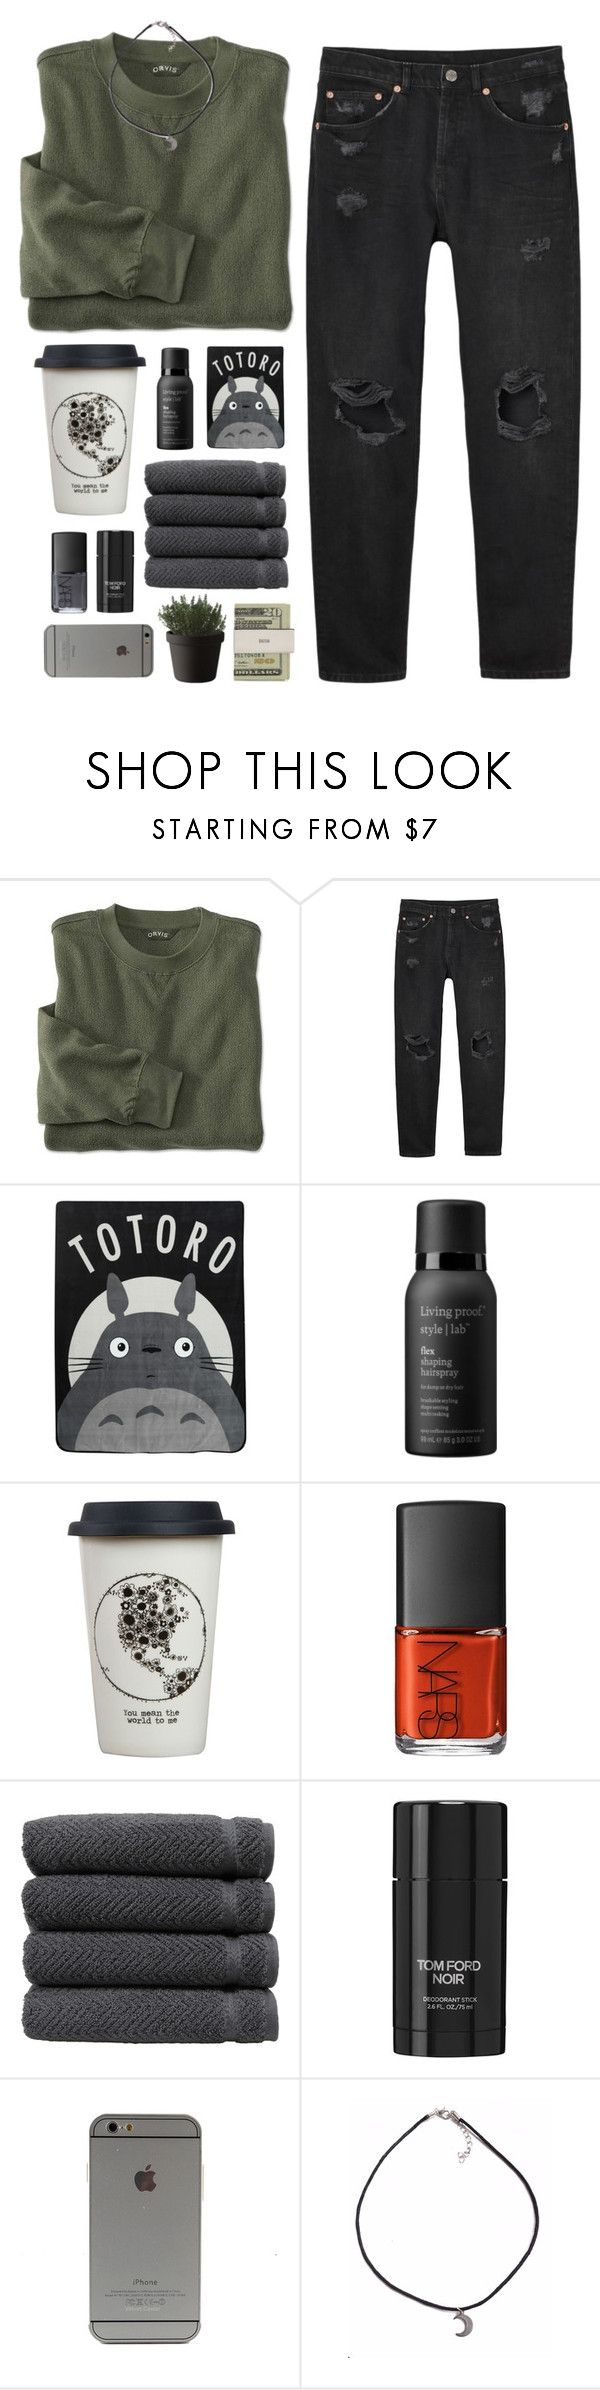 """May the sunrise bring hope where it once was forgotten"" by nandim ❤ liked on Polyvore featuring Monki, Ghibli, Living Proof, Natural Life, NARS Cosmetics, Linum Home Textiles, Tom Ford, Jack Spade, Muuto and country"